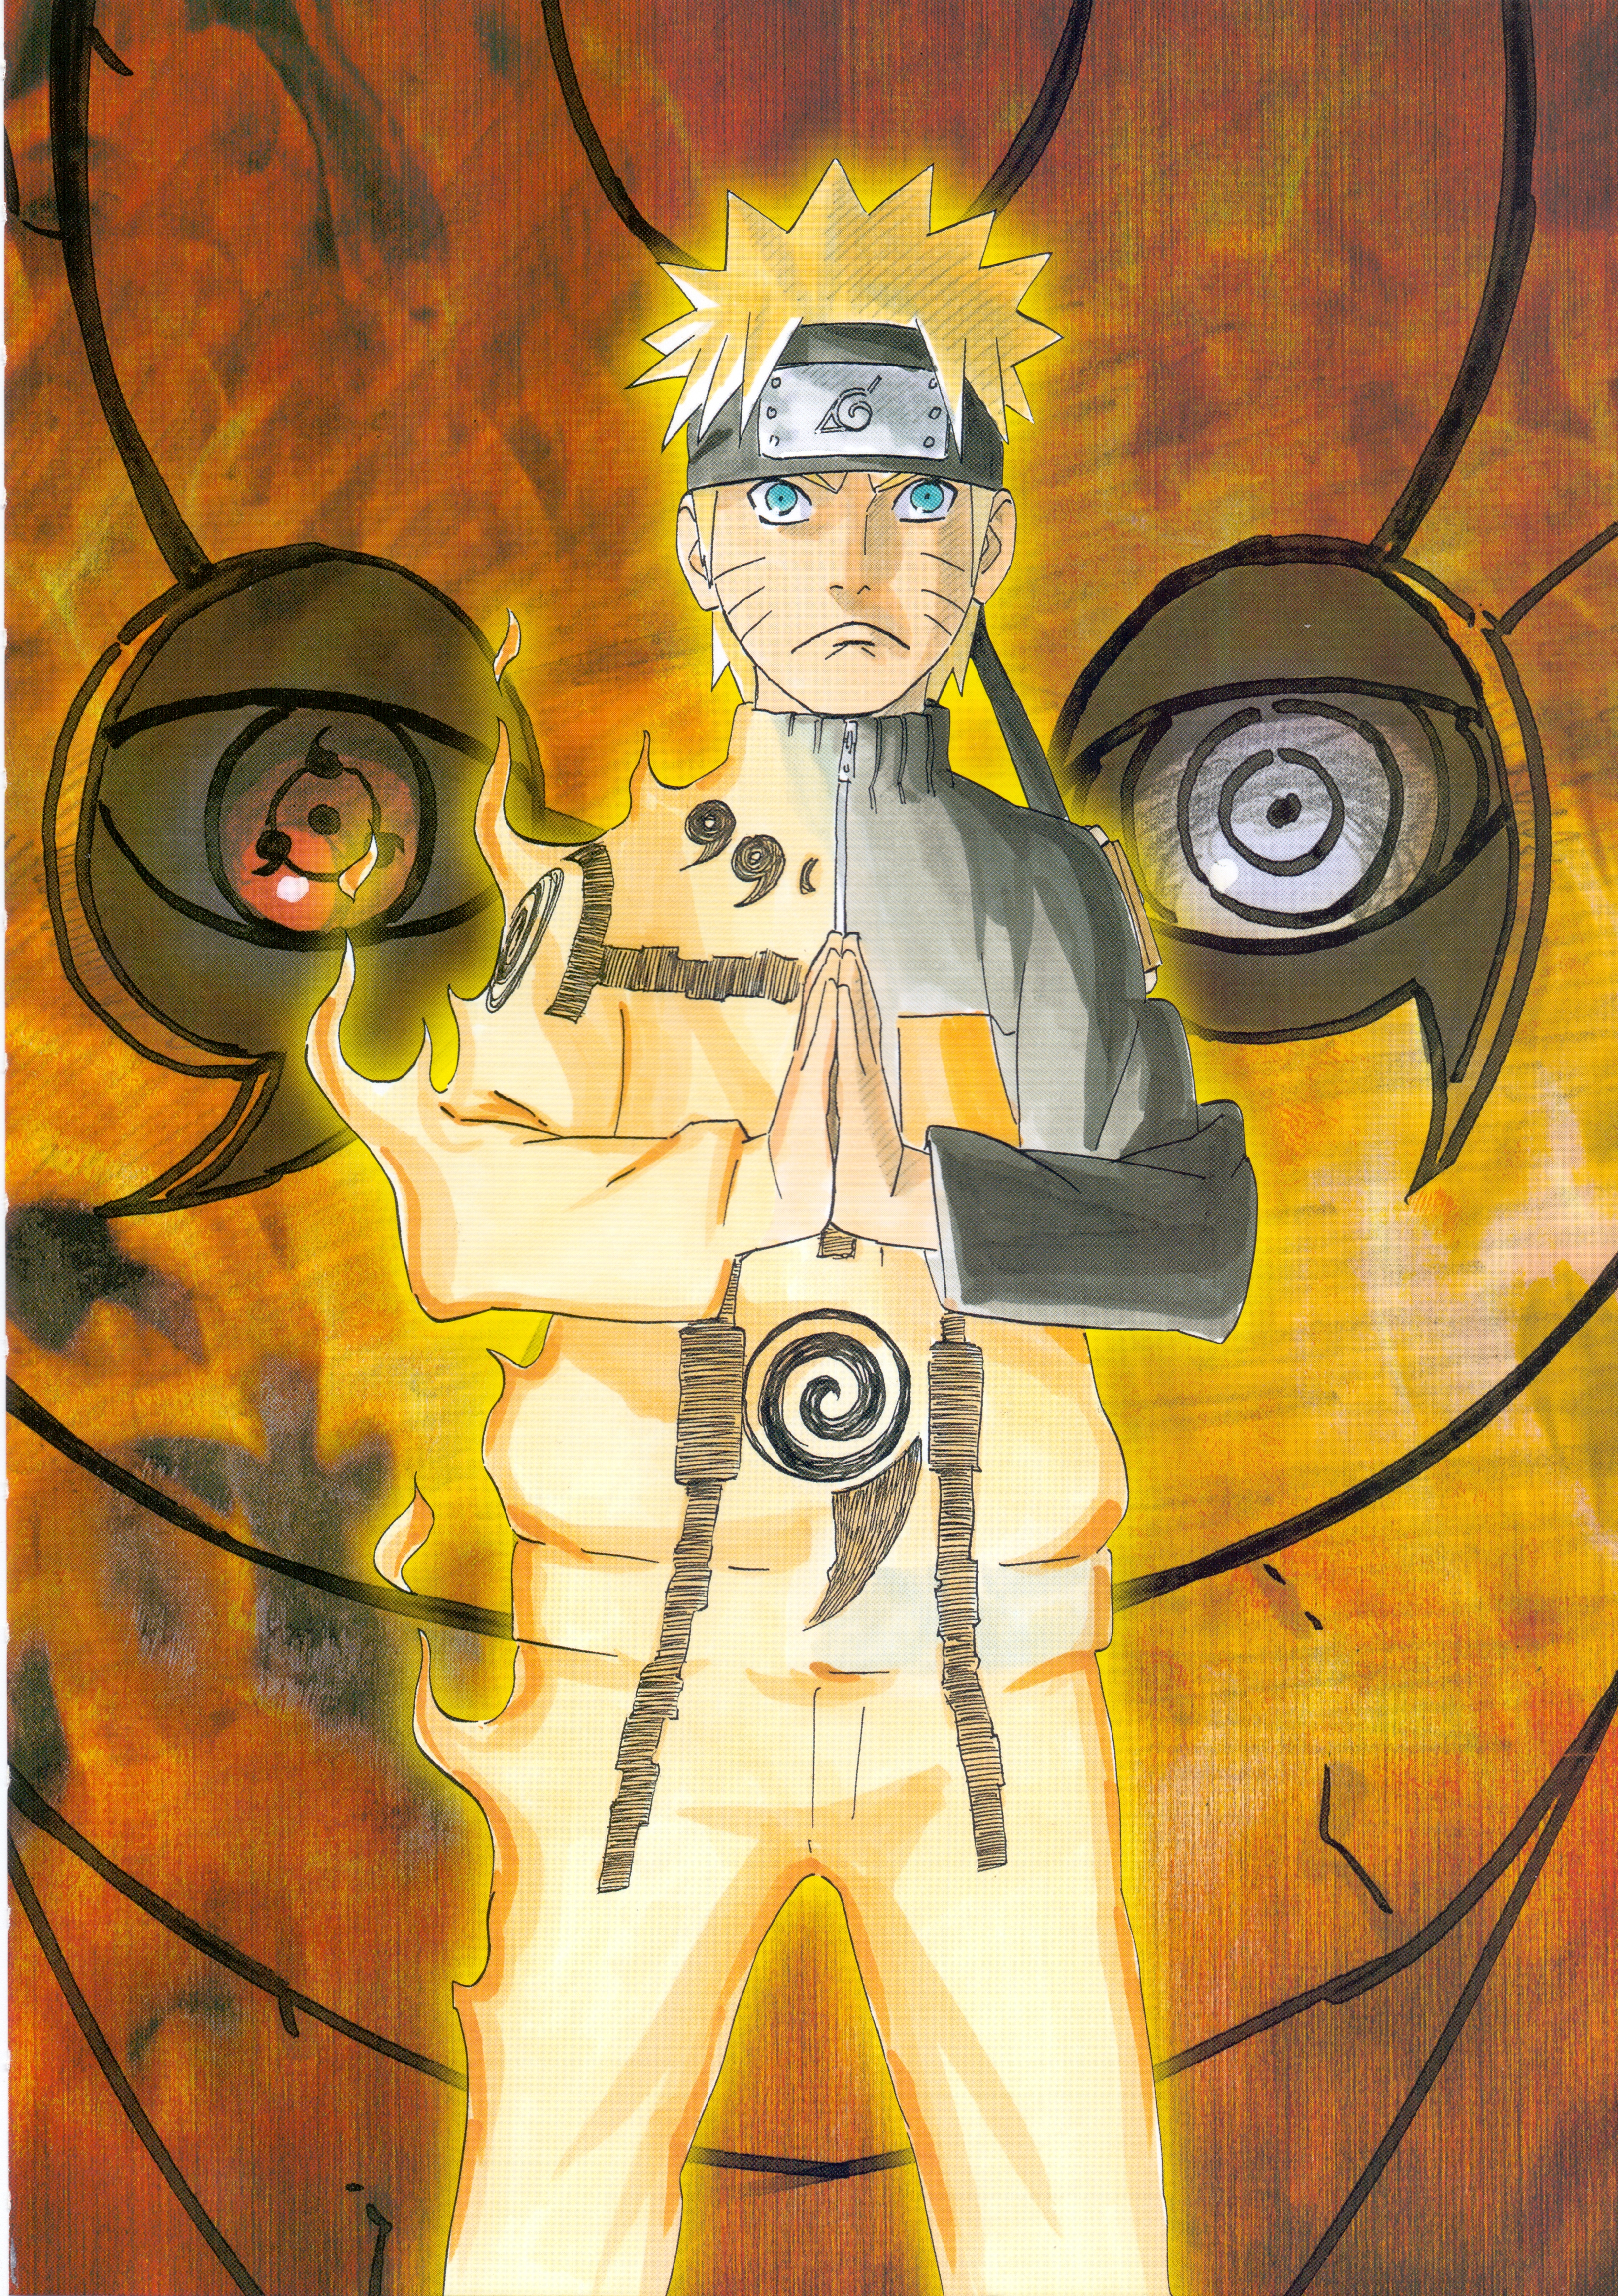 Naruto Transforms As Tobi Looks From Behind